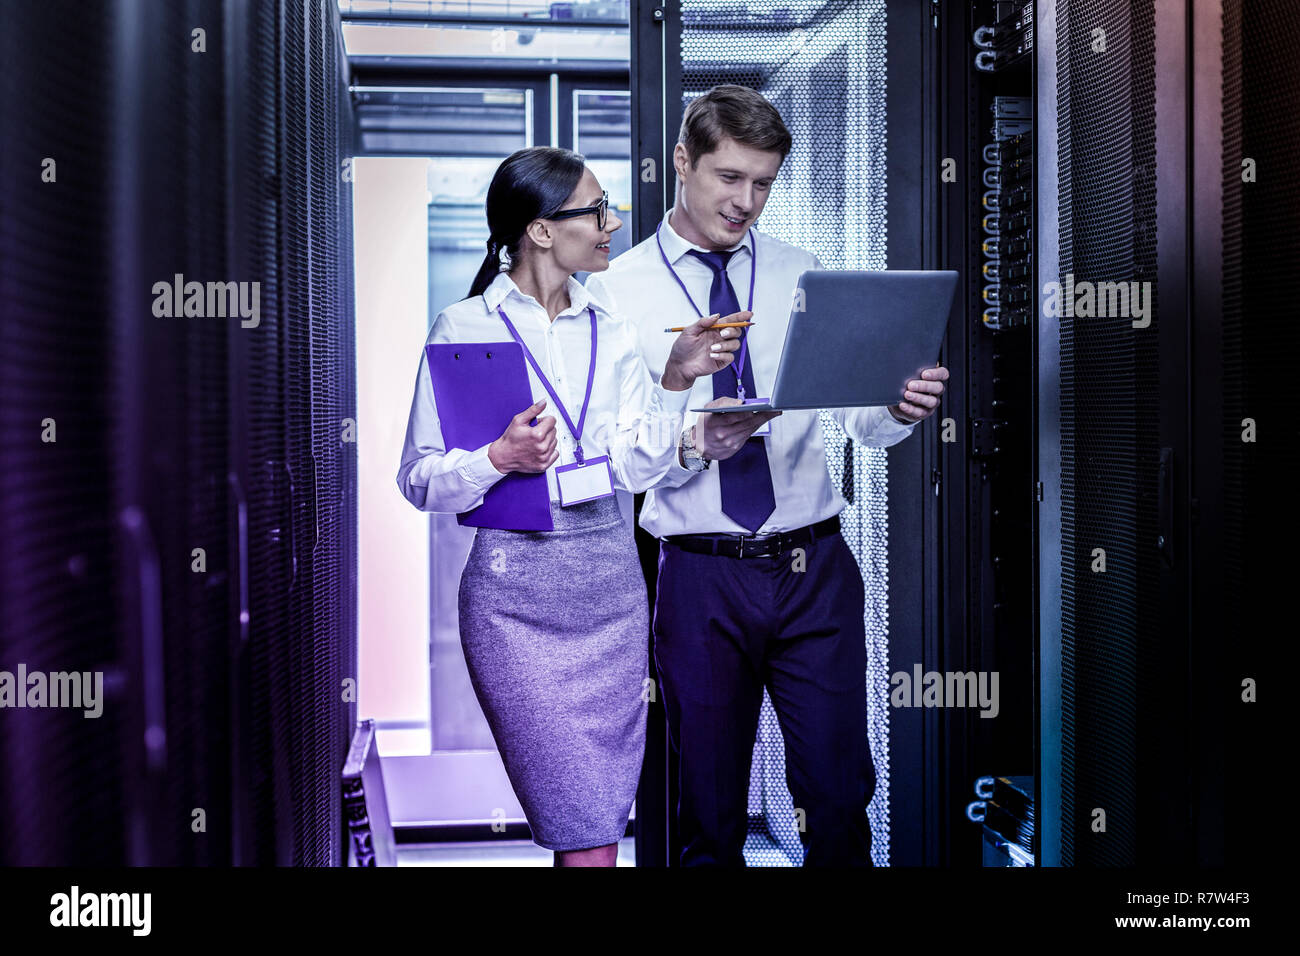 Cheerful positive woman discussing work with her colleague - Stock Image